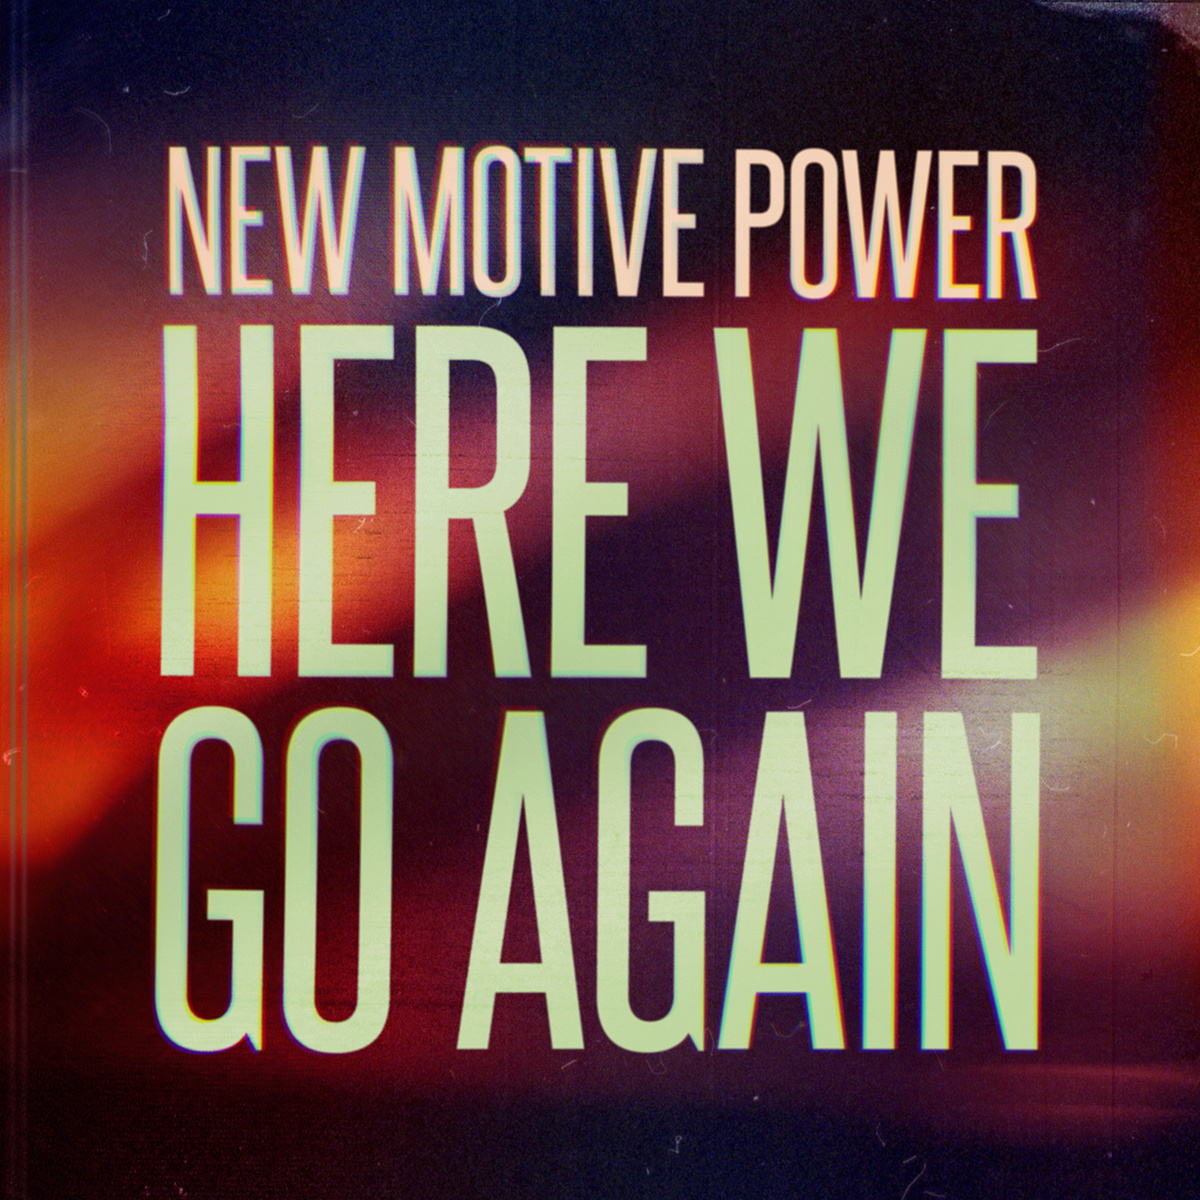 New Motive Power - Here We Go Again